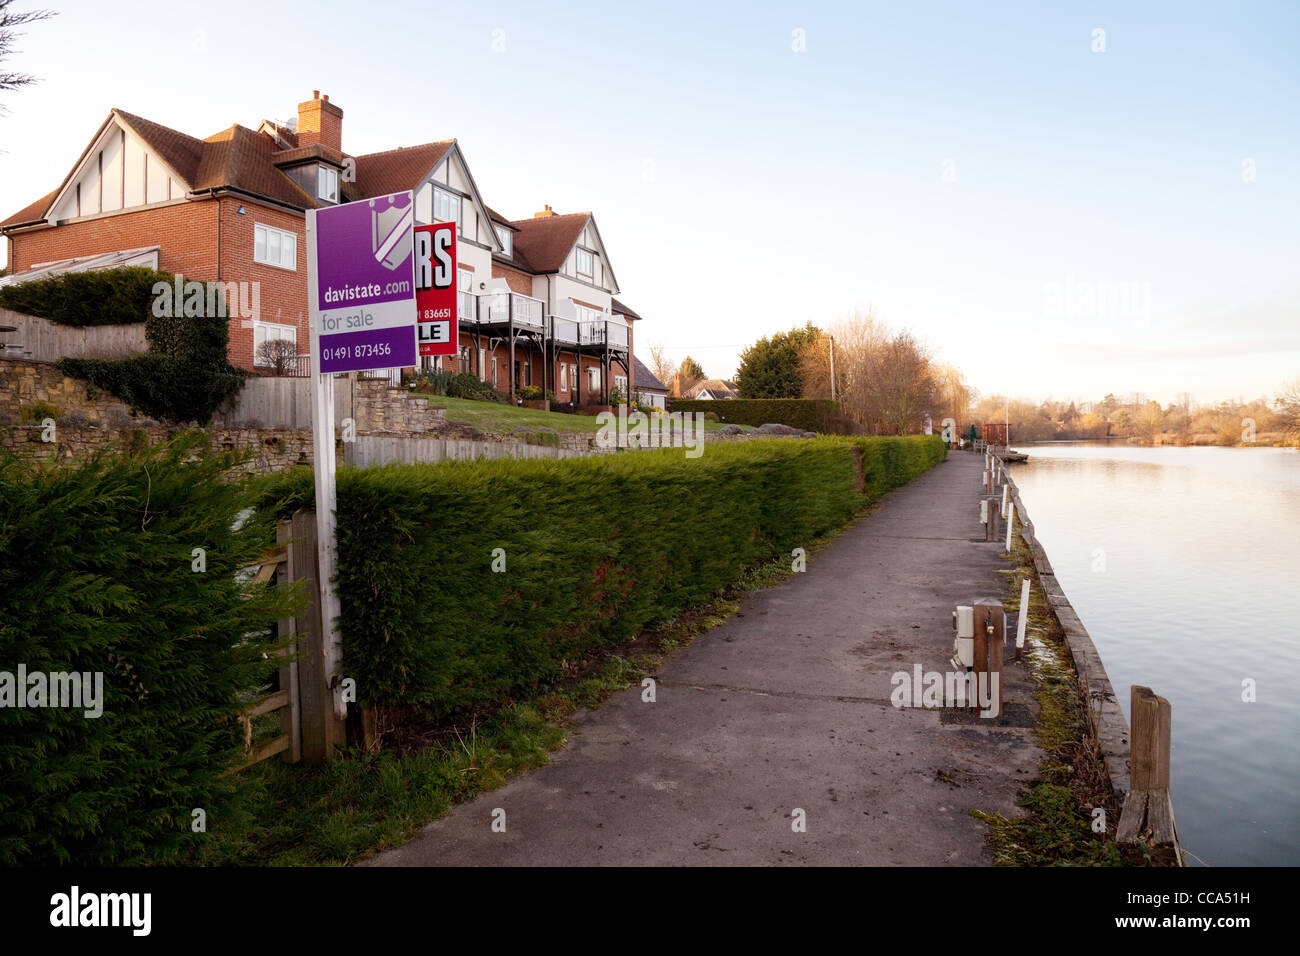 Houses for sale on the River Thames at Moulsford, Oxfordshire - Stock Image